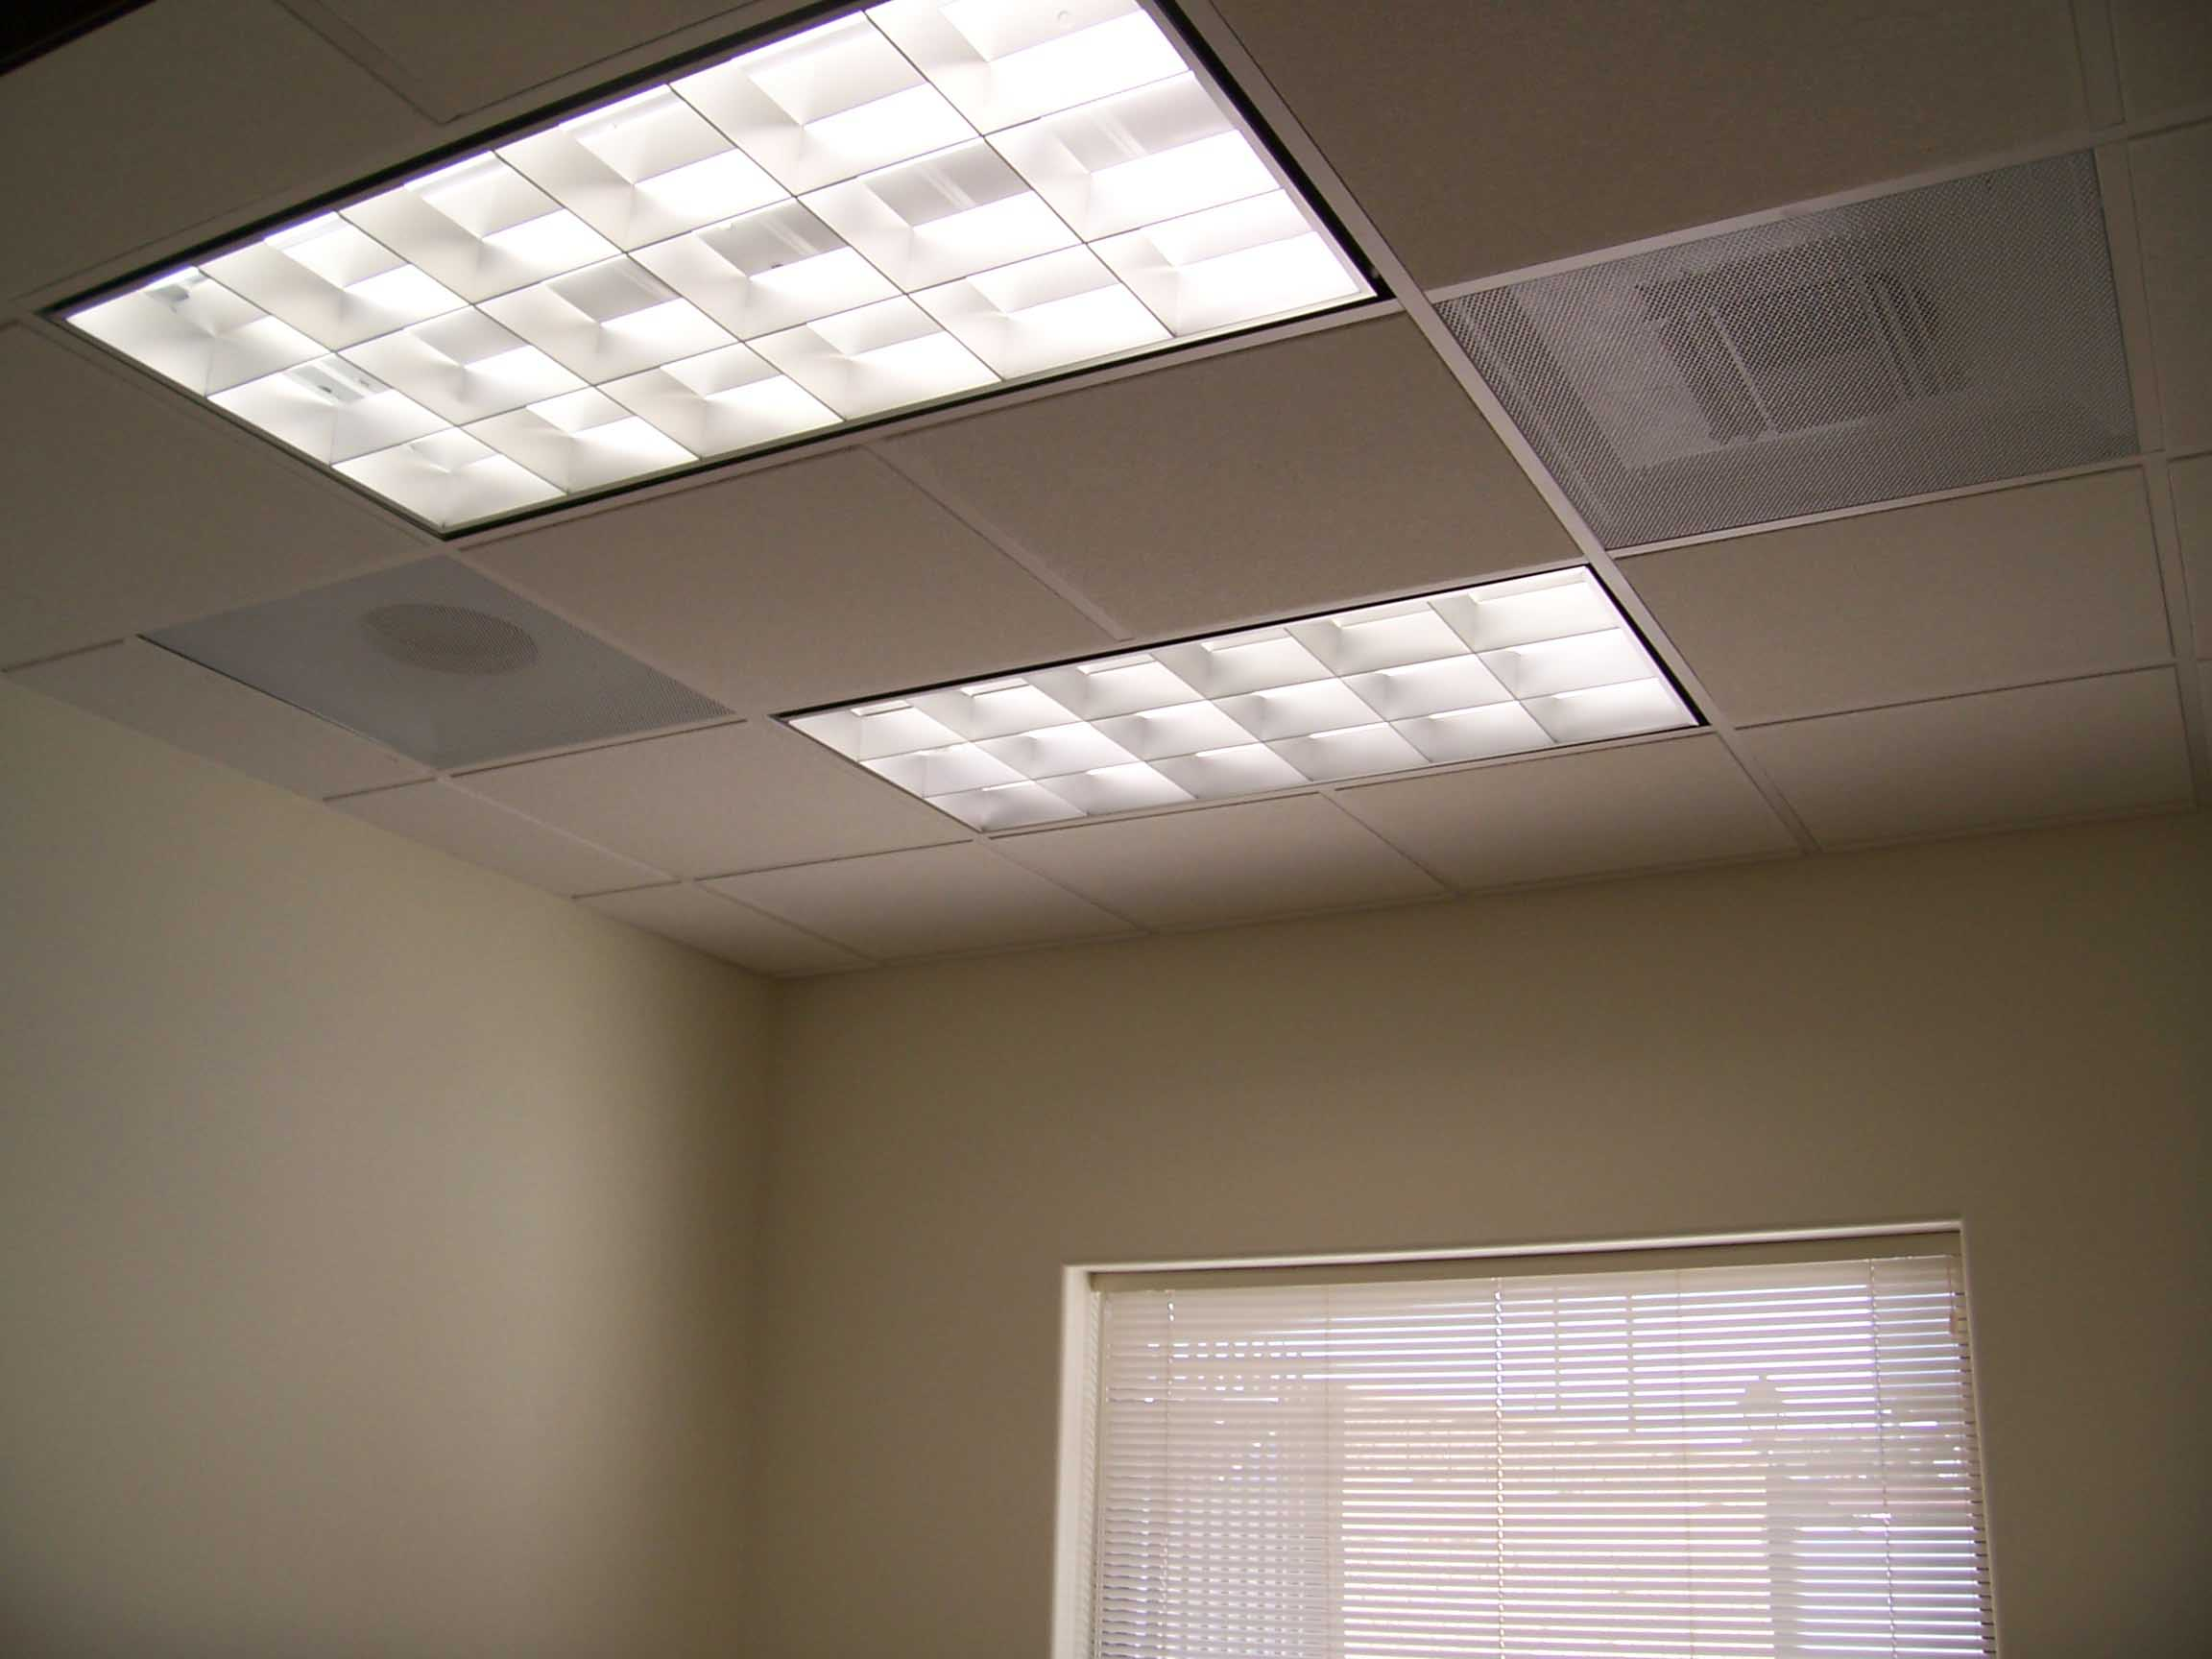 Glamorous Lighting using fluorescent ceiling lights